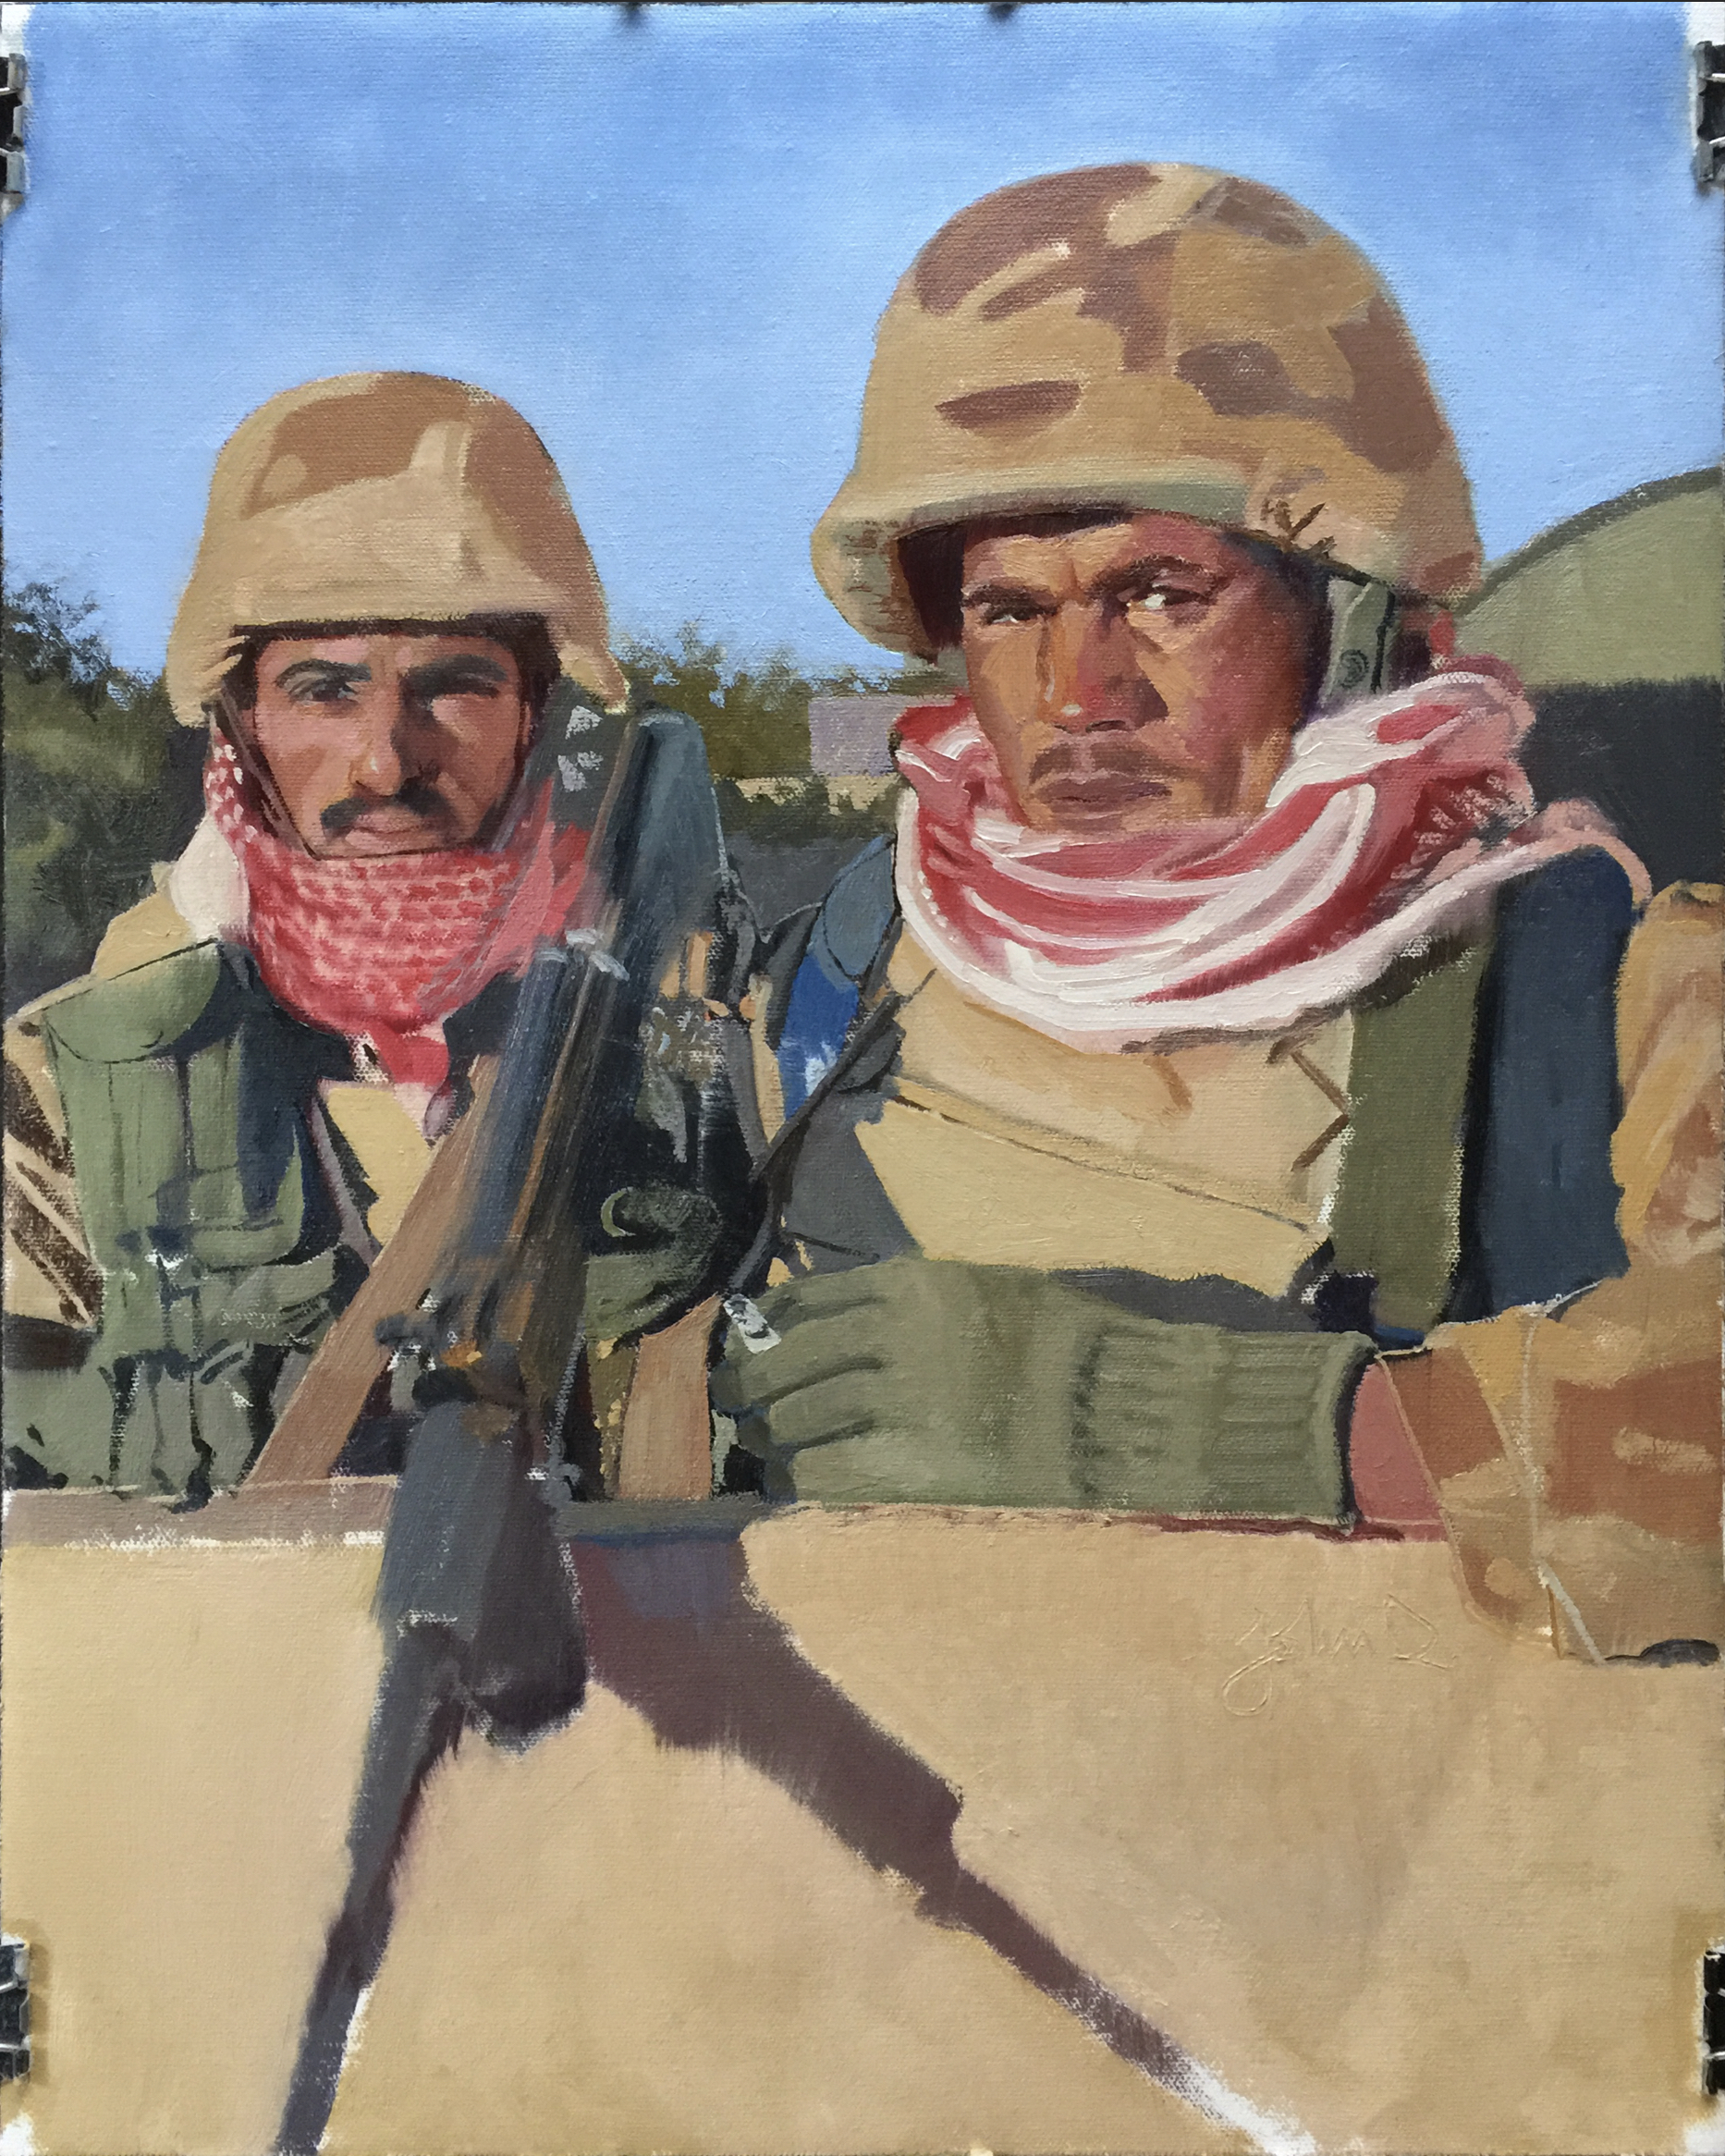 Painting by John Deckert from a photo by and courtesy of WO3 Michael D. Fay, USMC (ret)